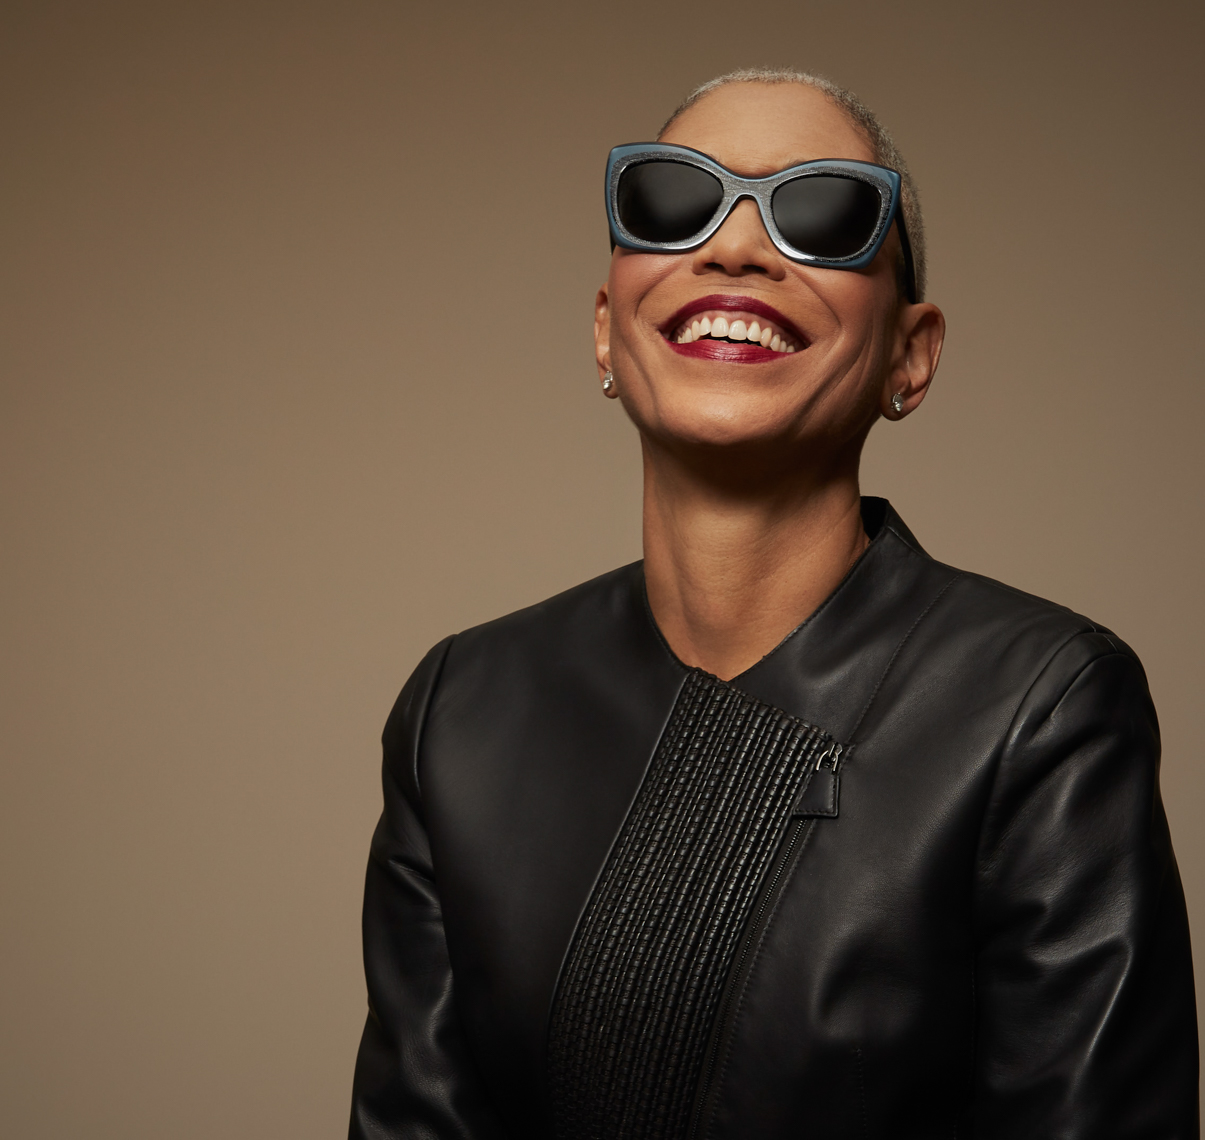 Silver haired woman in black leather jacket and glasses smiling and wearing sunglasses San Francisco fashion photographer